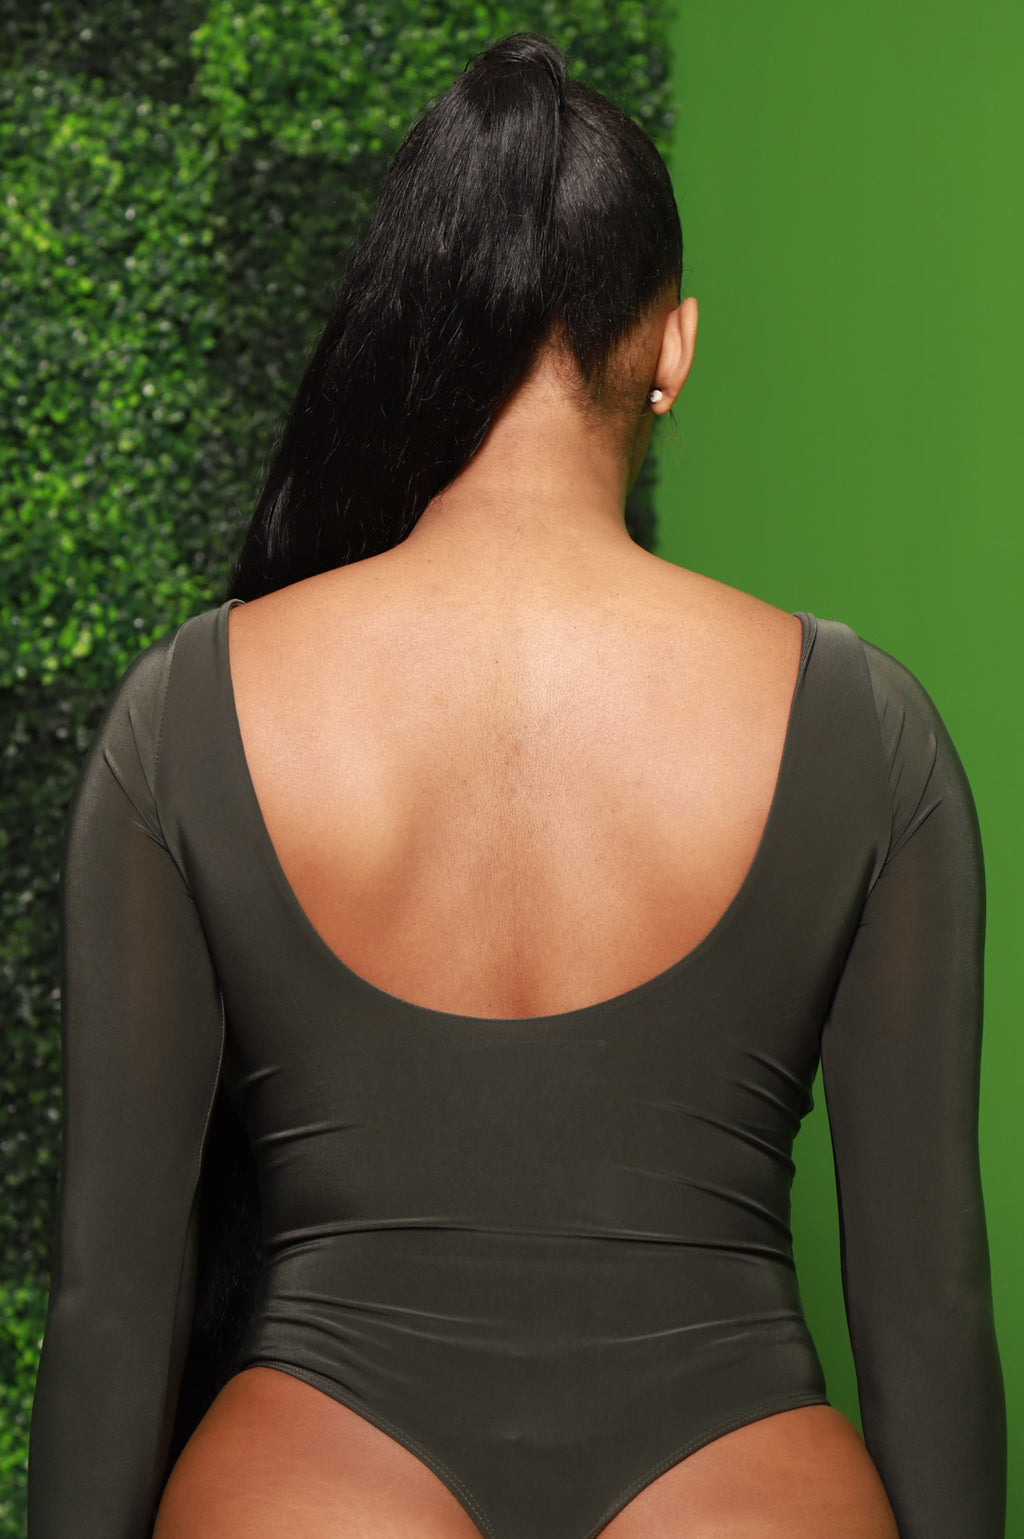 Lodge Simple Full Shaping Bodysuit - Olive - Swank A Posh